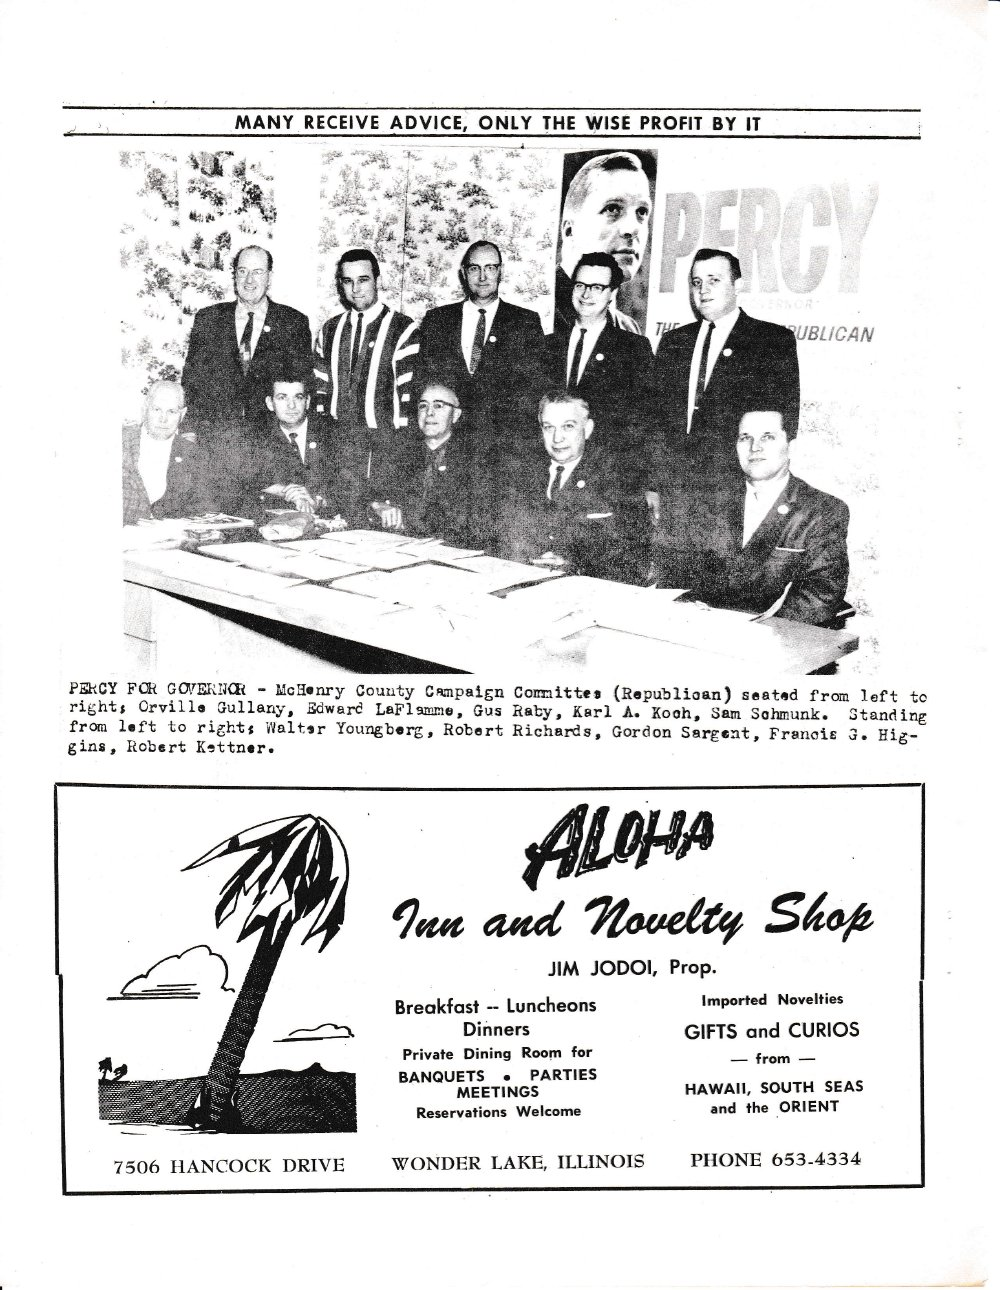 The Pictorial Newsletter: March 11, 1964